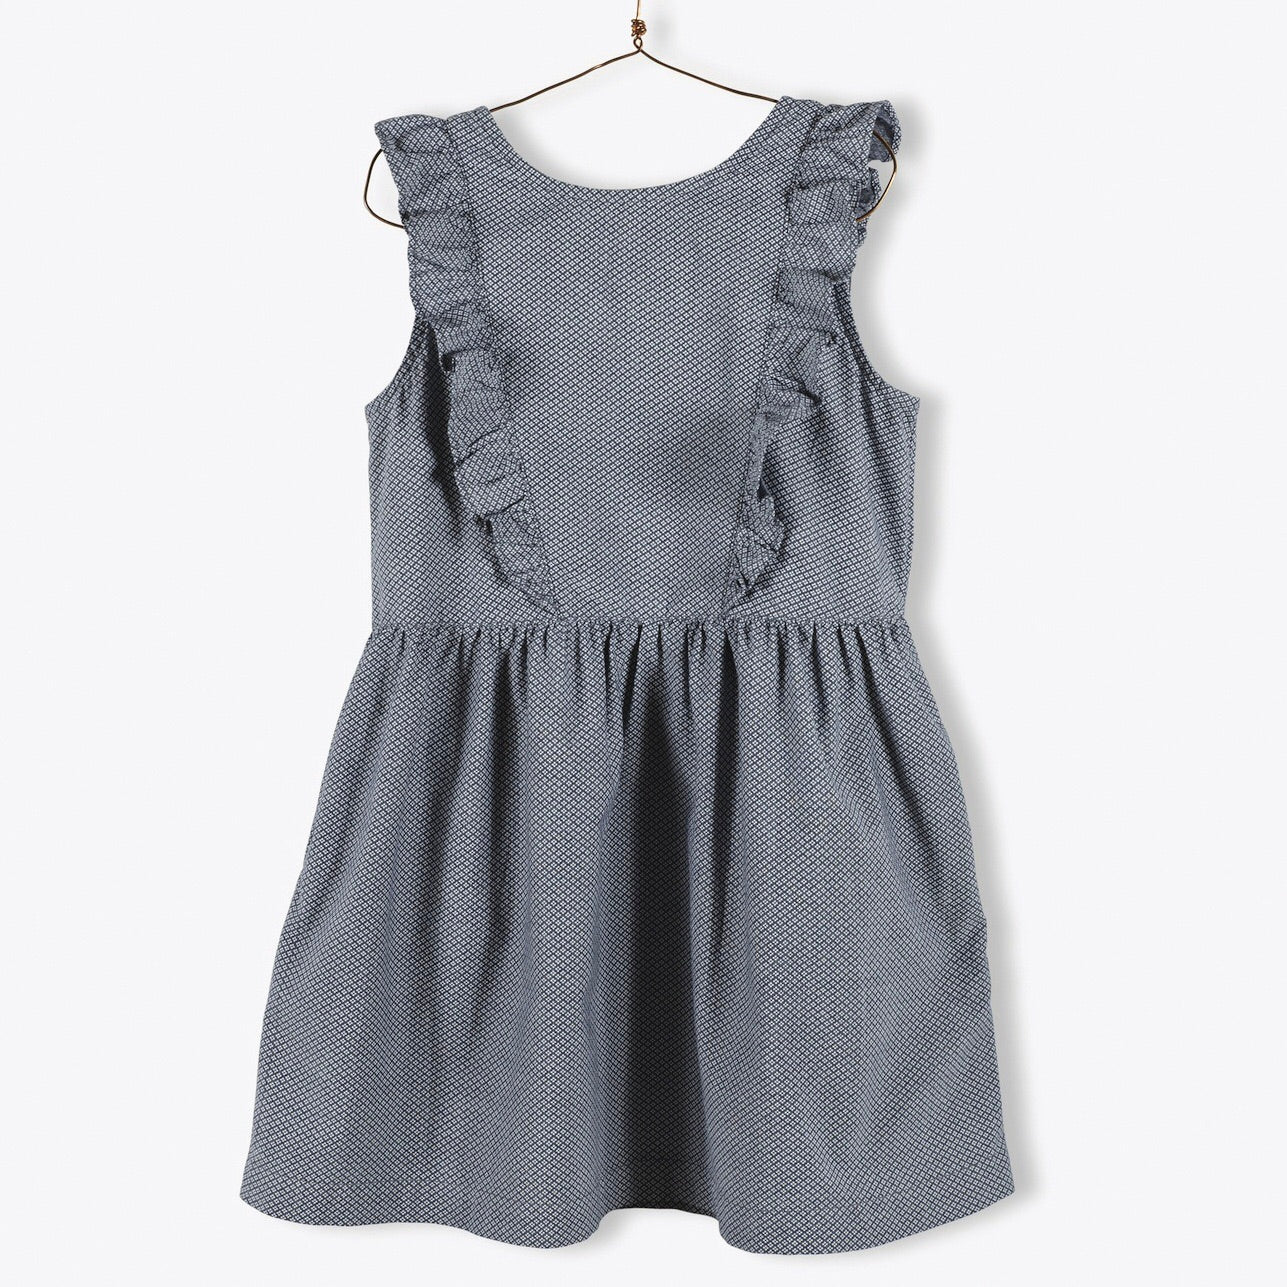 Chambray Dress Ruffled Details